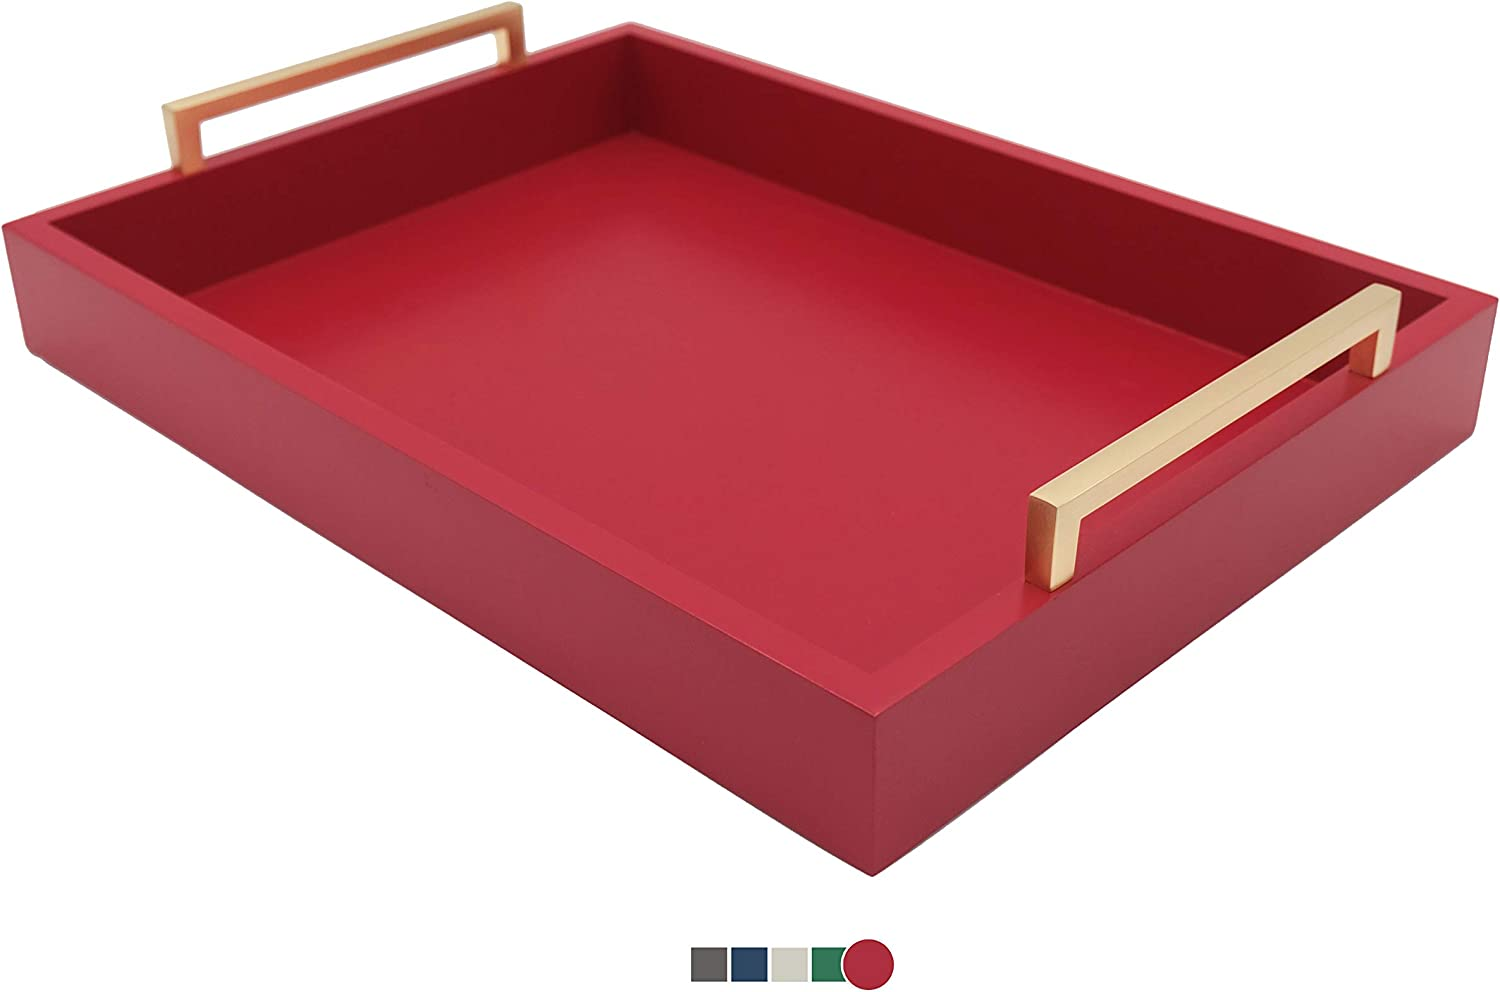 Montecito Home Decorative Coffee Table Tray - Ottoman Tray - Breakfast, Drinks, Liquor Serving Tray - from Farmhouse to Modern - Matte Finish - Champagne Gold Handles - Crimson Red